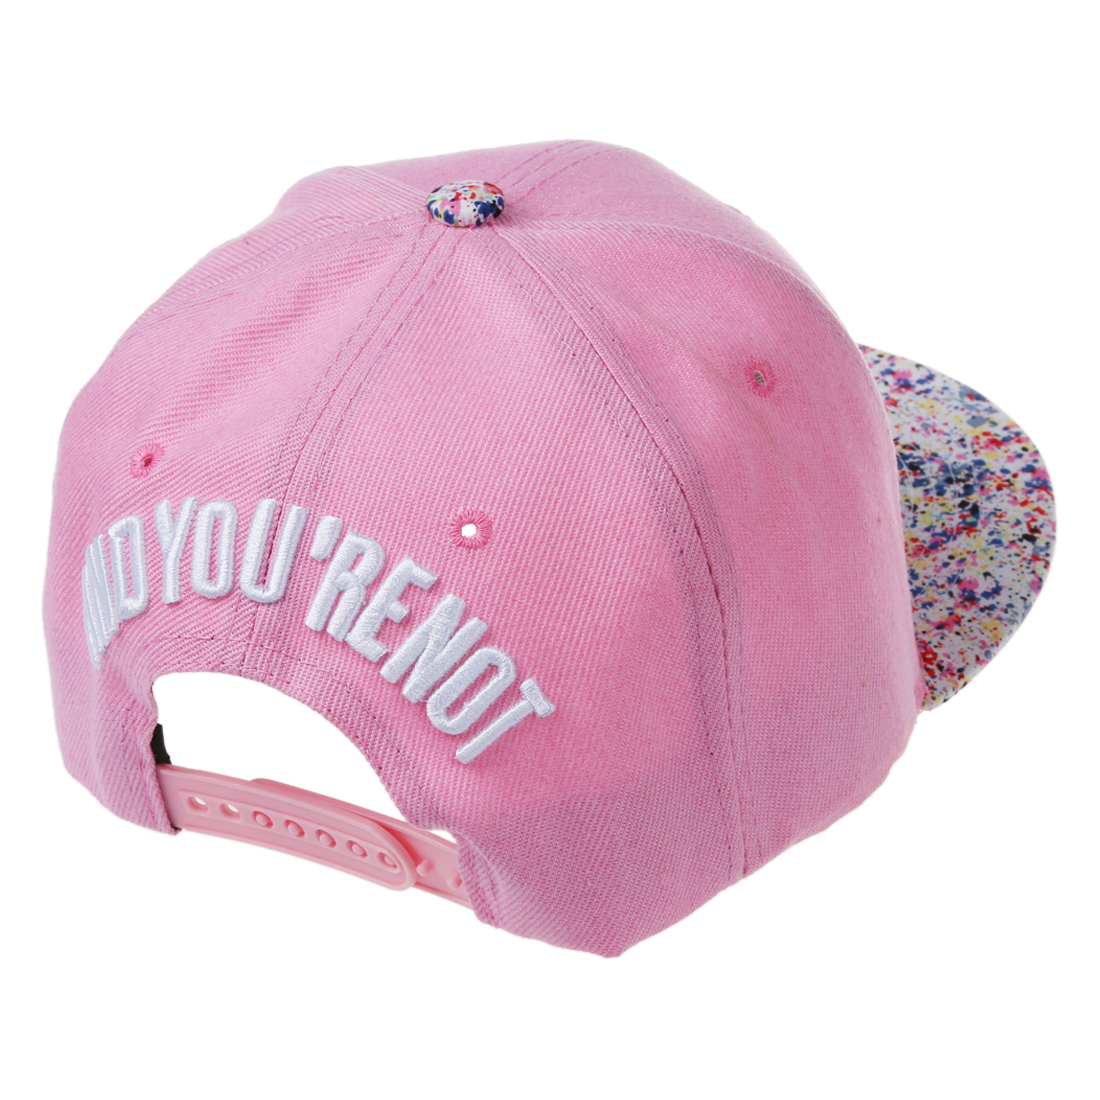 Men Women Baseball Hip Hop Cap Adjustable Fresh Snapback Trucker Hat V4y2  Pink. About this product. Picture 1 of 6  Picture 2 of 6  Picture 3 of 6 ... afc09cb2439b